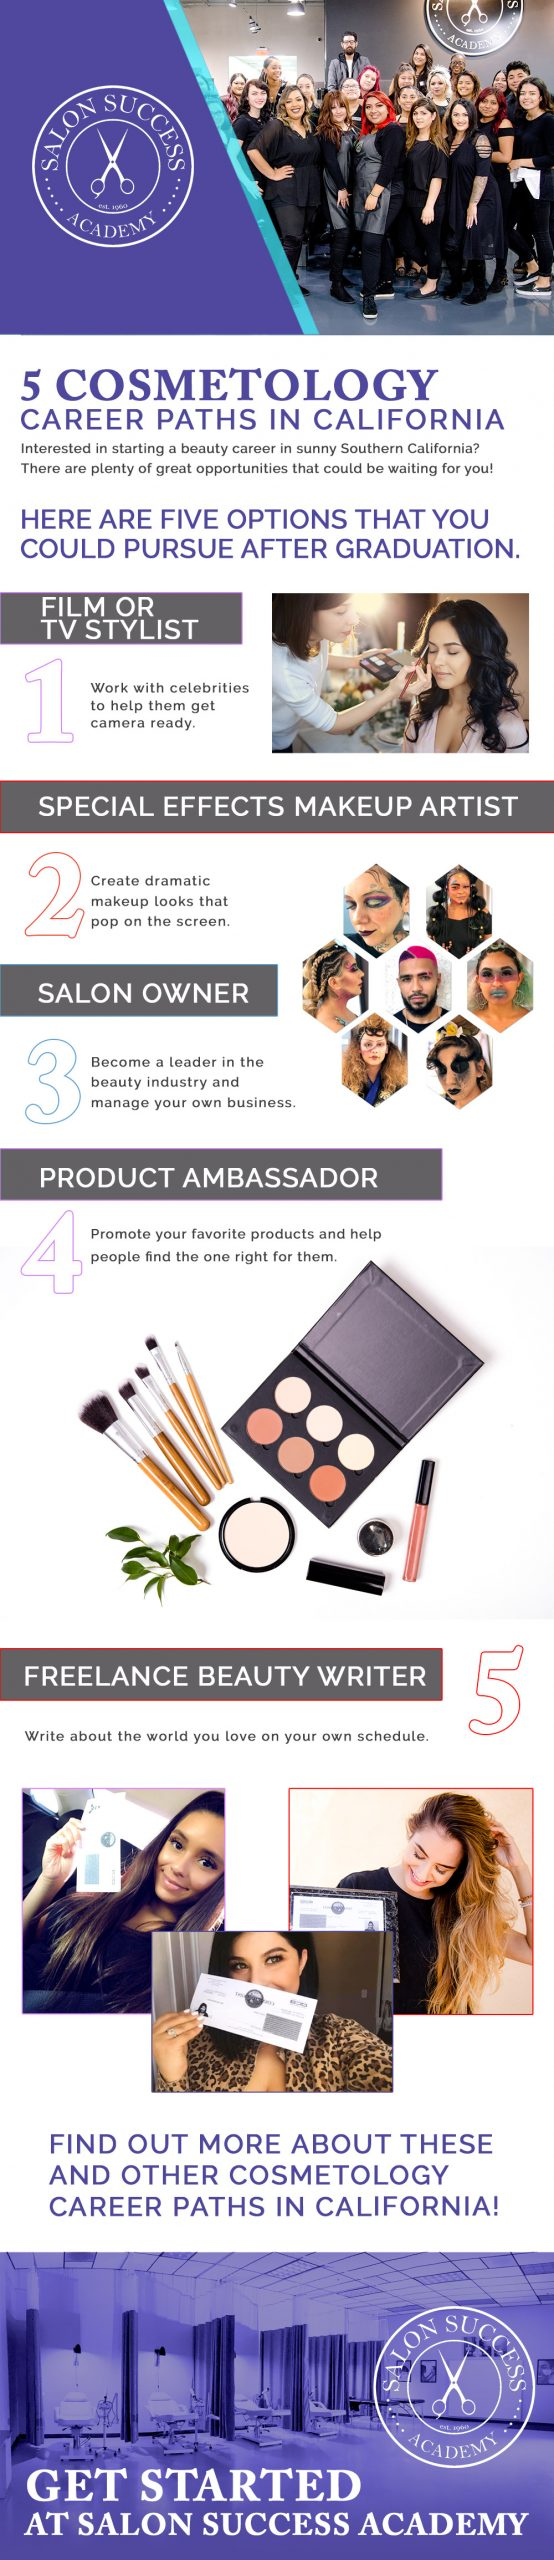 infographic details 5 career paths for cosmetologists in california